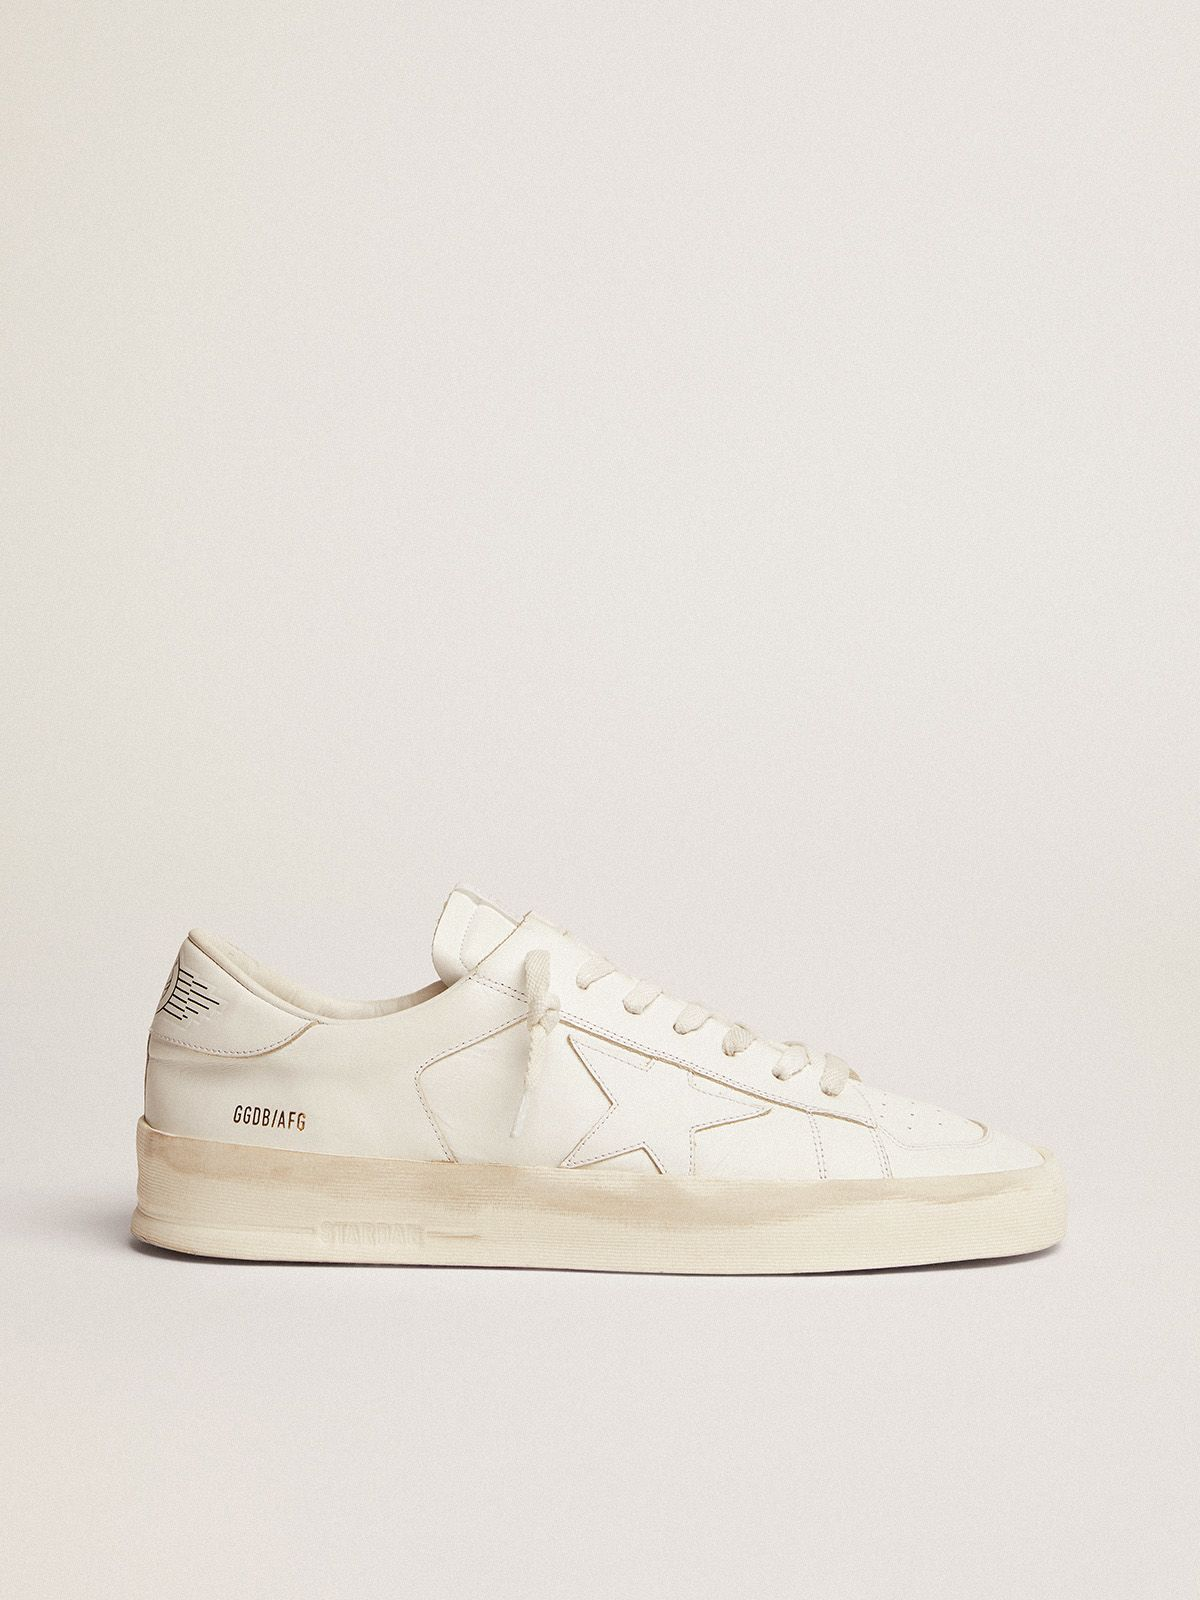 Stardan sneakers in total white leather